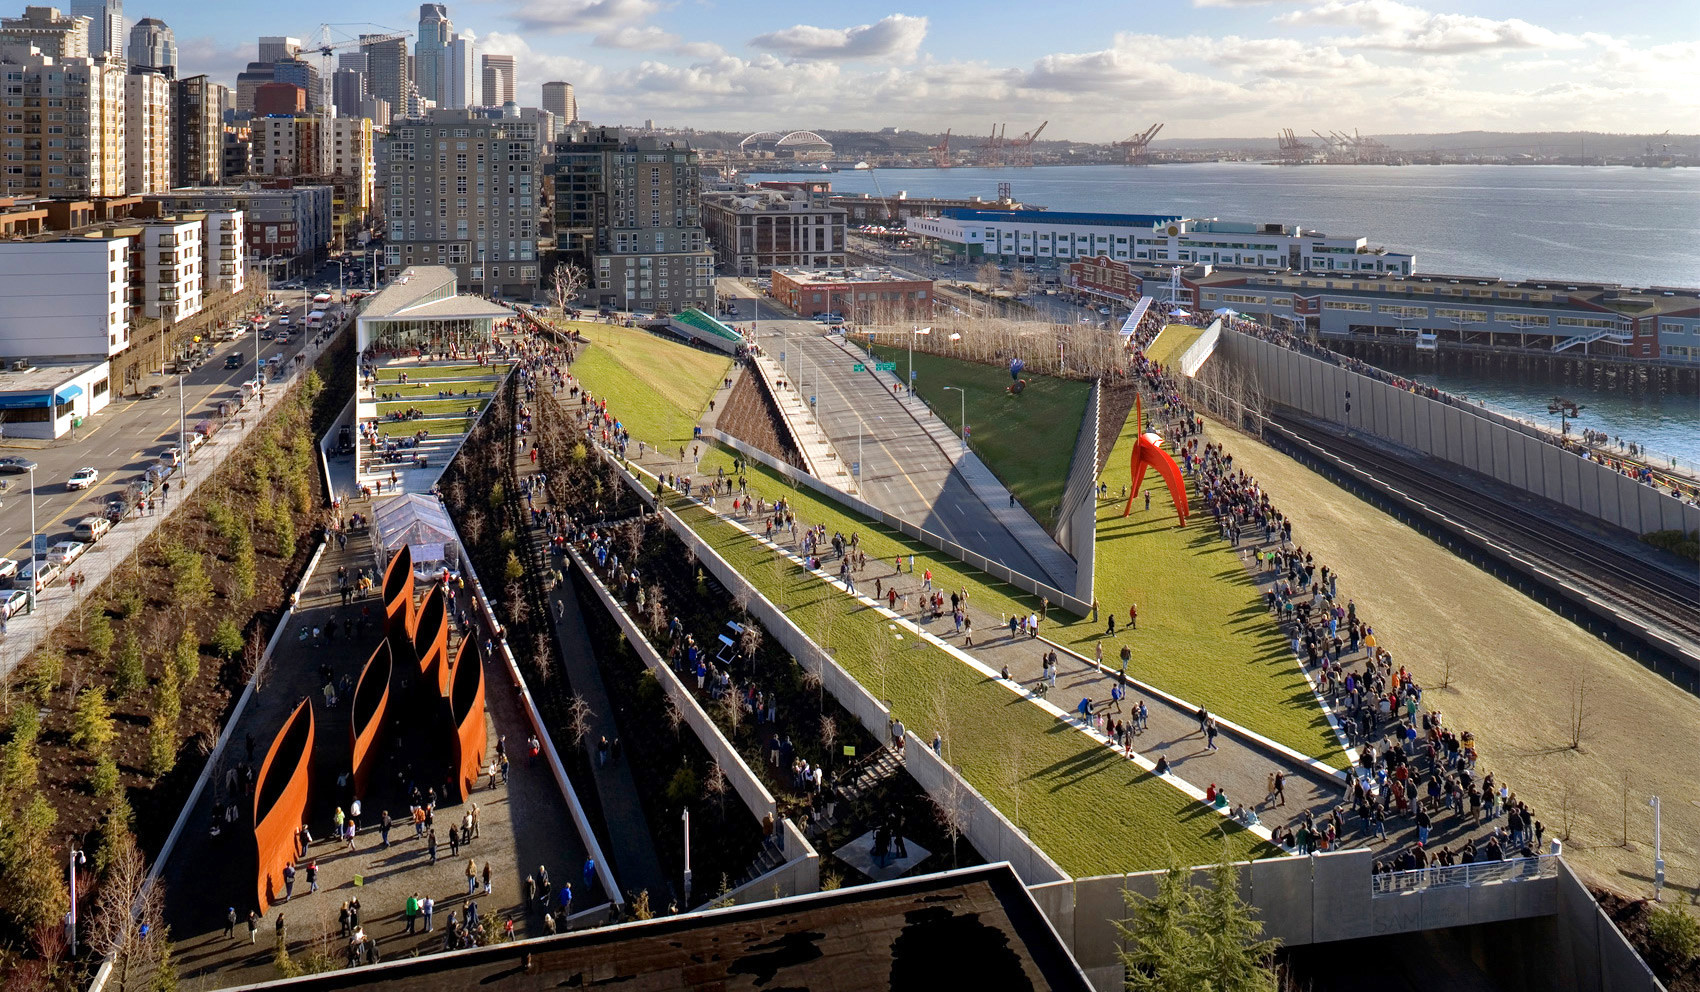 Seattle Art Museum: Olympic Sculpture Park / Courtesy of Weiss/Manfredi